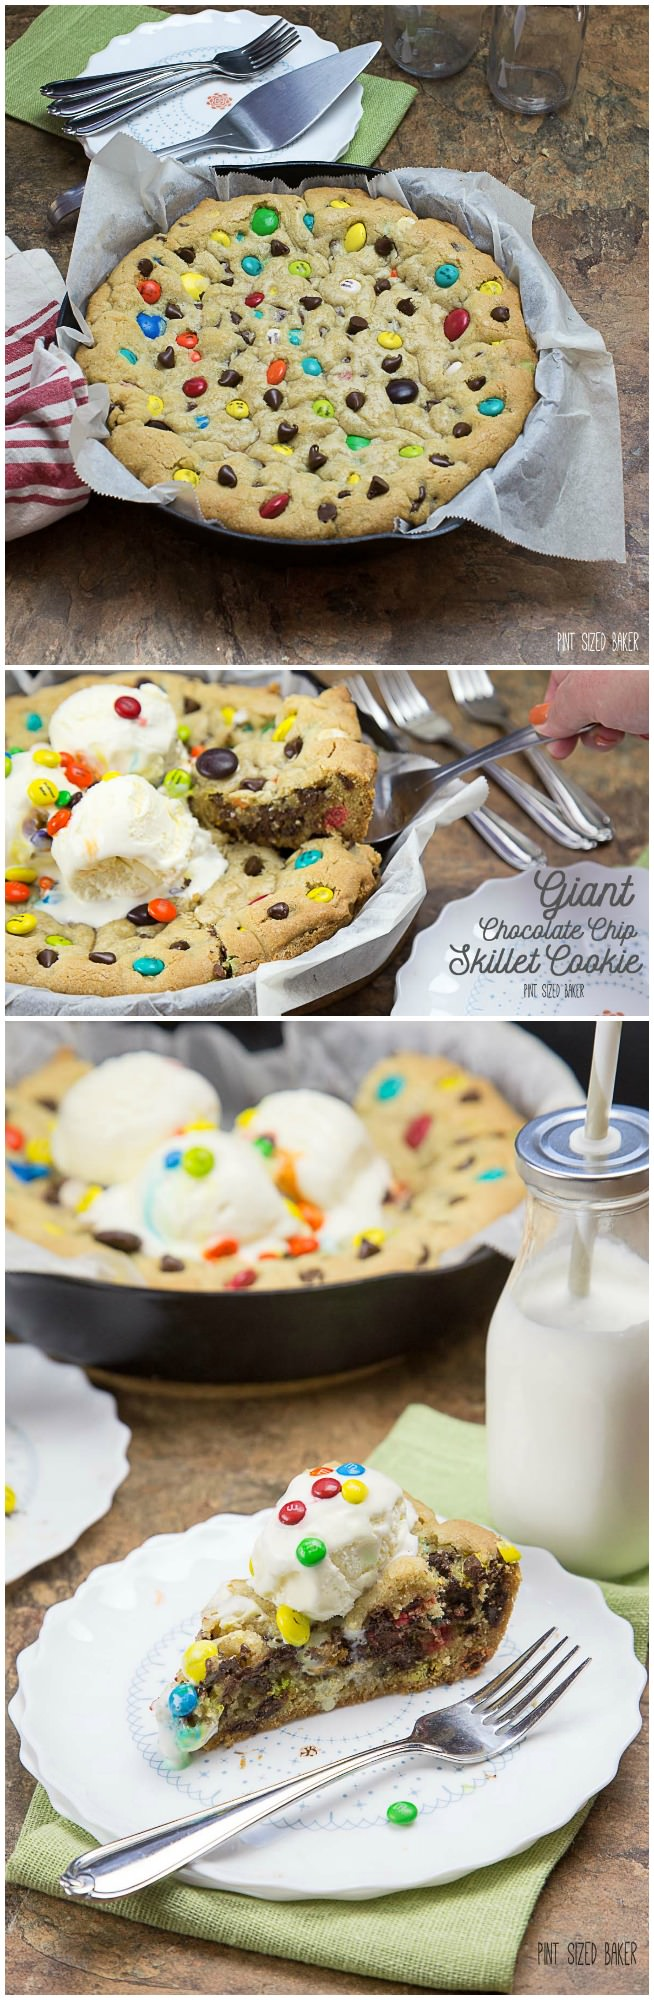 Giant Chocolate Chip Skillet Cookie - Pint Sized Baker